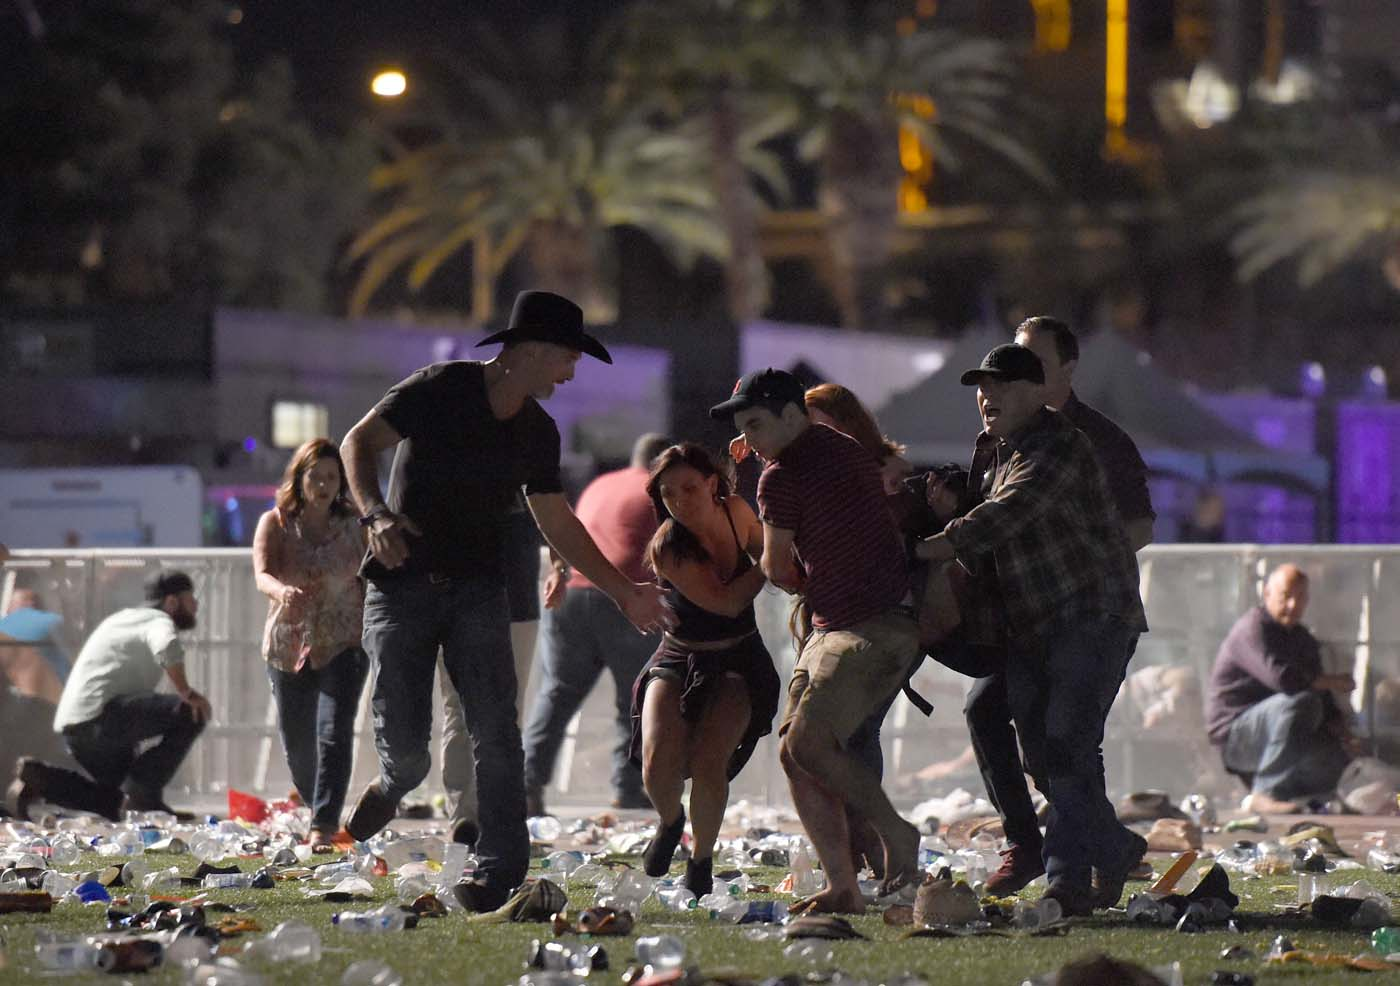 LAS VEGAS, NV - OCTOBER 01: (EDITORS NOTE: Image contains graphic content.) People carry a peson at the Route 91 Harvest country music festival after apparent gun fire was heard on October 1, 2017 in Las Vegas, Nevada. There are reports of an active shooter around the Mandalay Bay Resort and Casino. David Becker/Getty Images/AFP